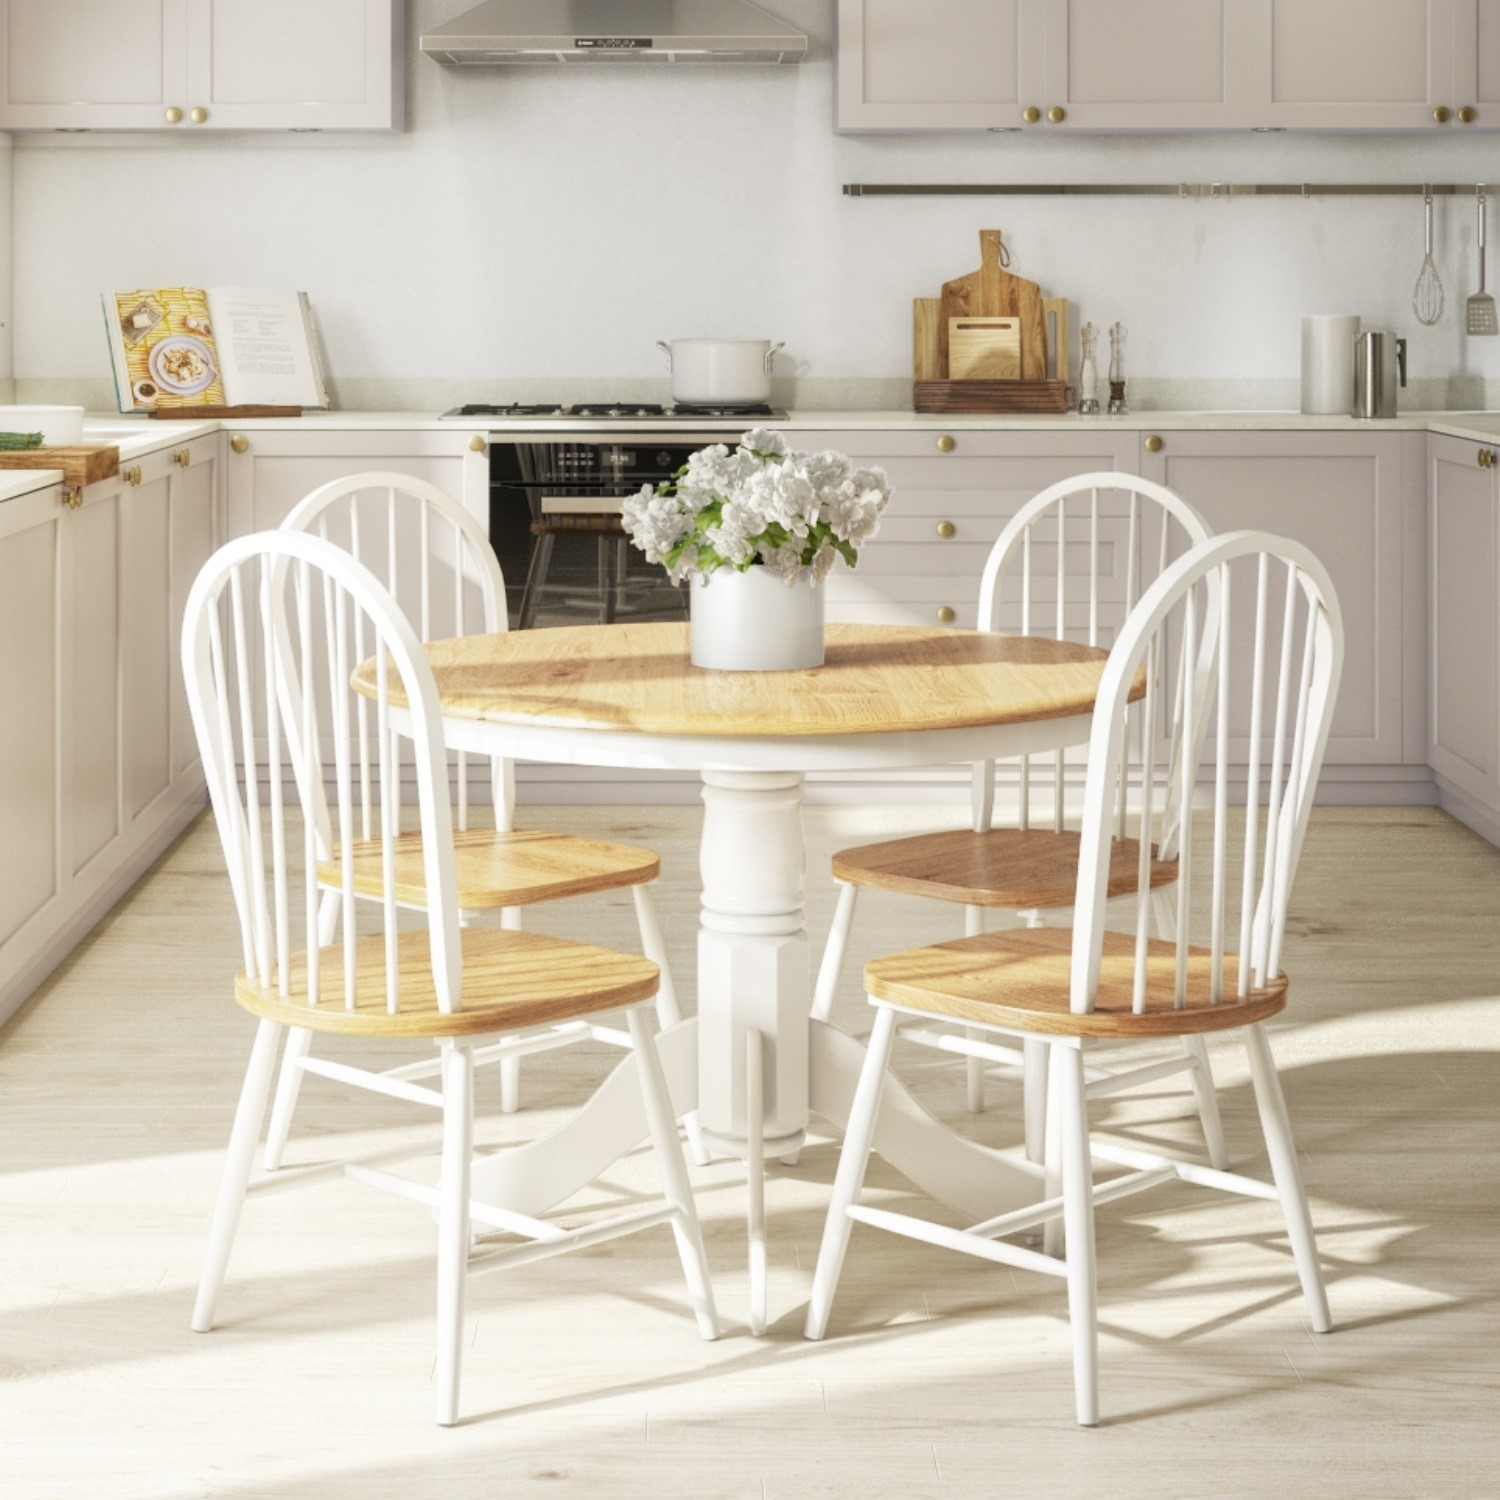 Small Round Dining Table with 4 Chairs in Wood & White - Rho